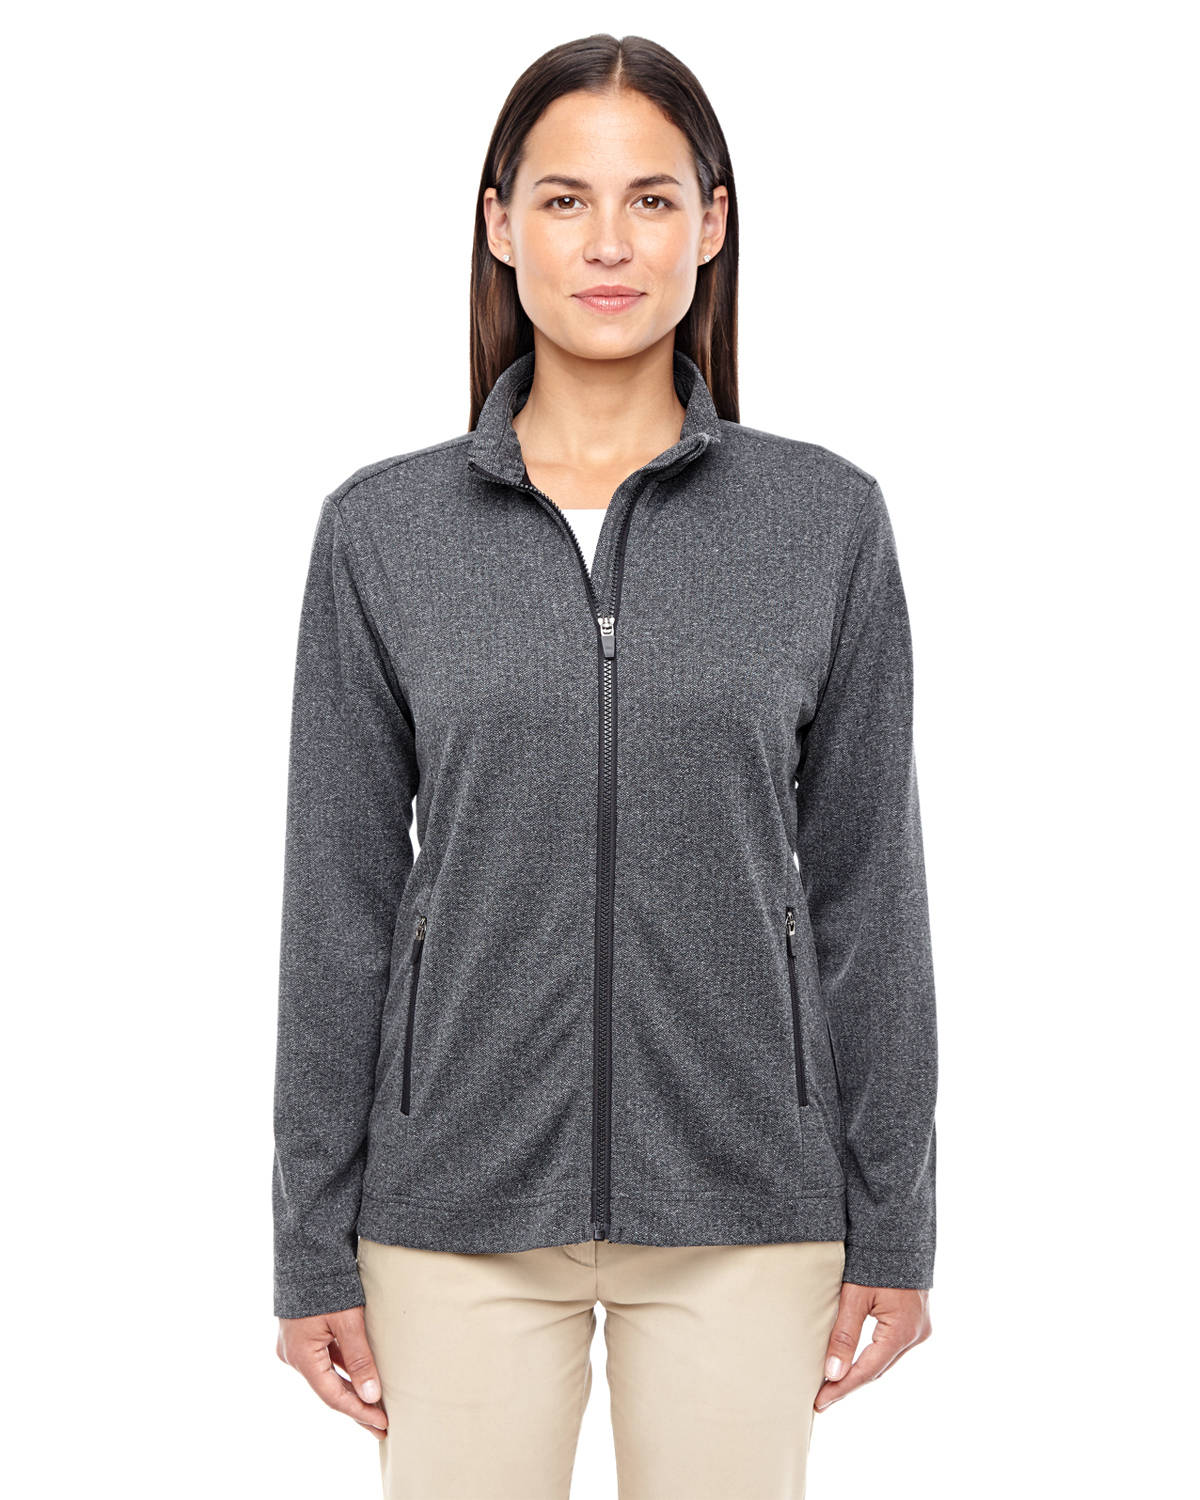 Ladies' Fairfield Herringbone Full-Zip Jacket